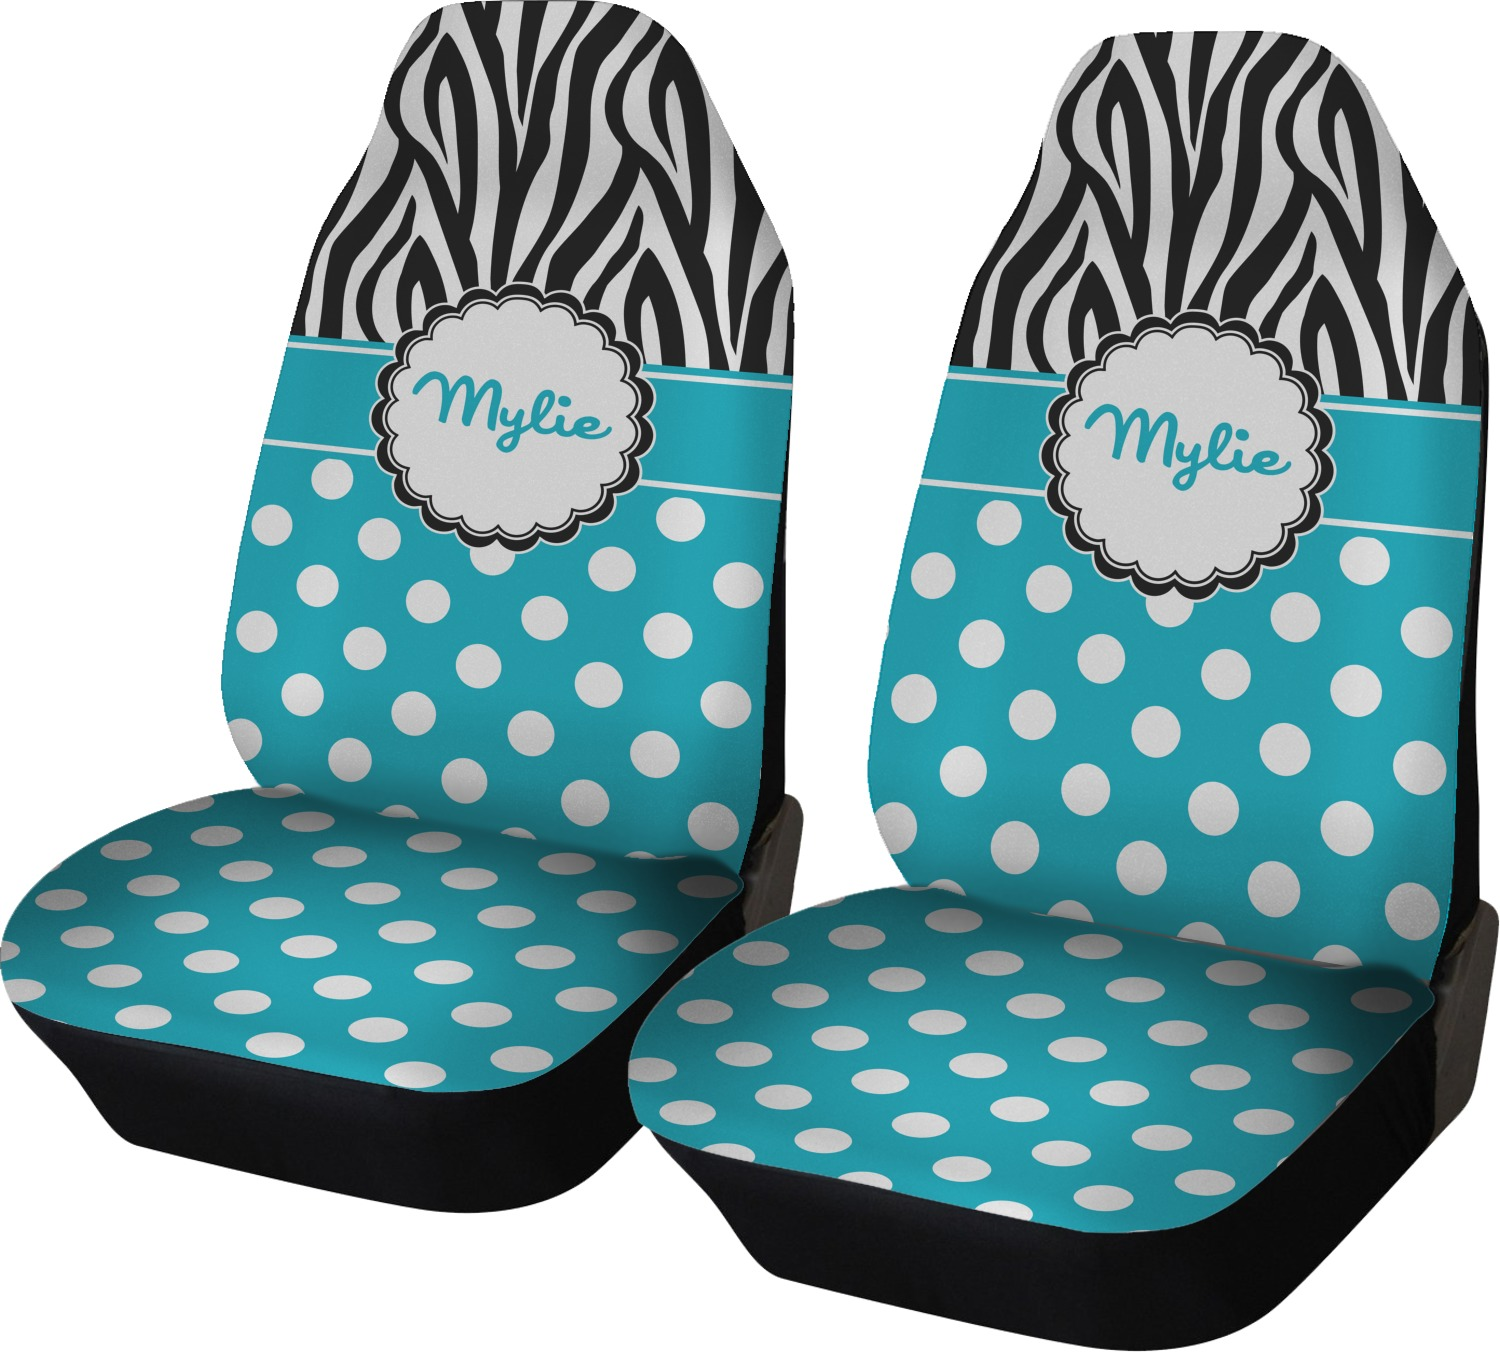 Dots Amp Zebra Car Seat Covers Set Of Two Personalized